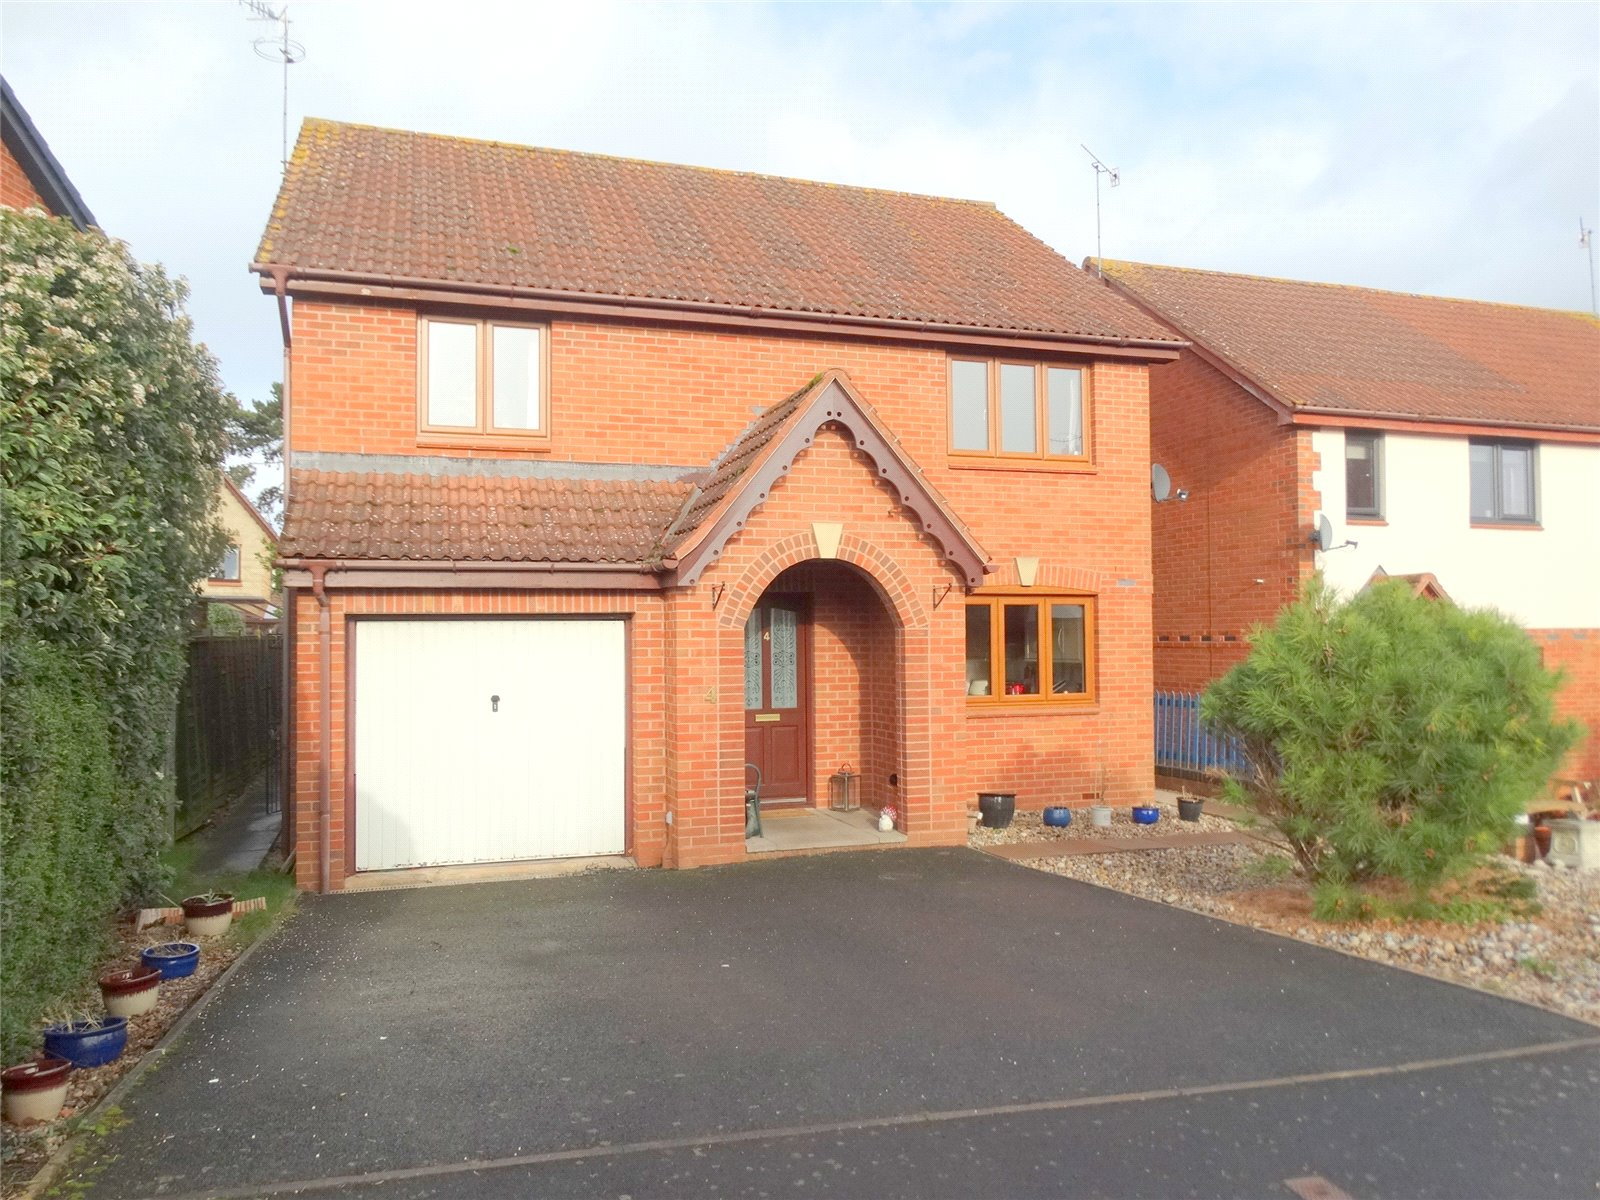 4 Bedrooms Detached House for sale in Byron Close Powick Worcester WR2